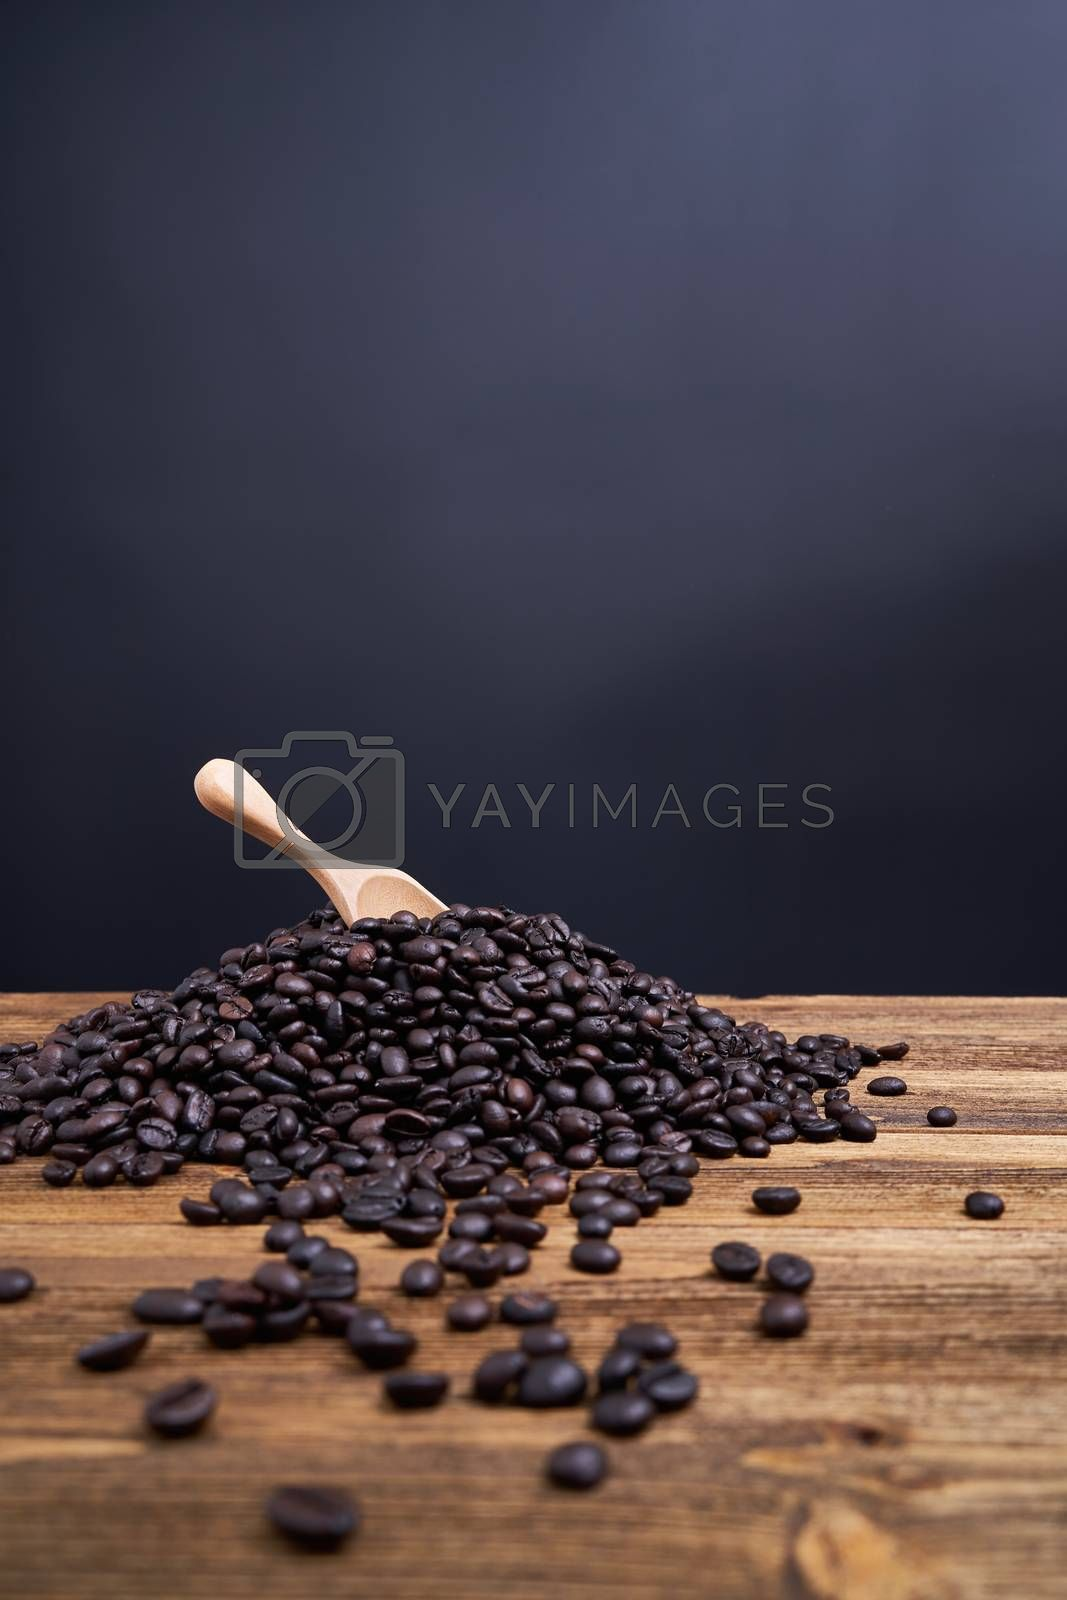 Royalty free image of Wooden spoon put on pile of coffee bean black background by eaglesky